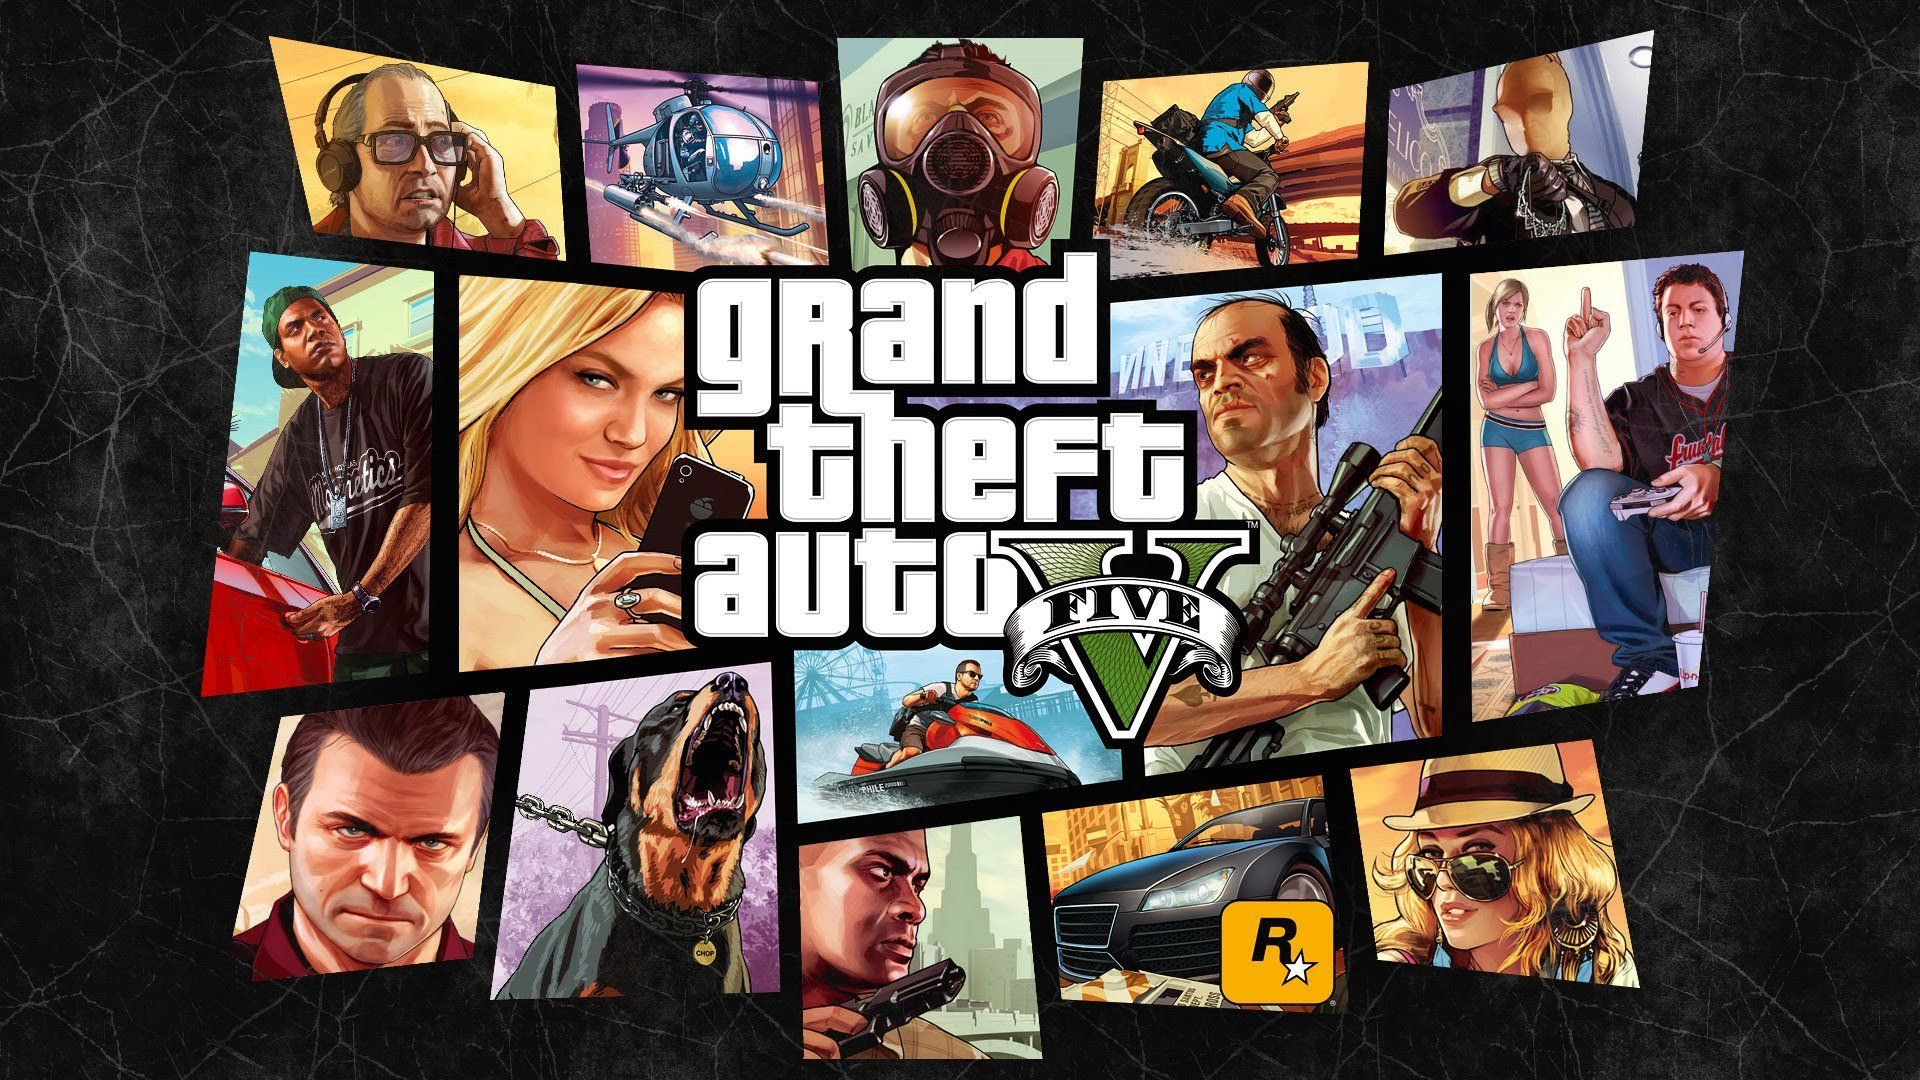 GTA V PS4 Wallpapers PS4 Home Grand theft auto, Gta 5